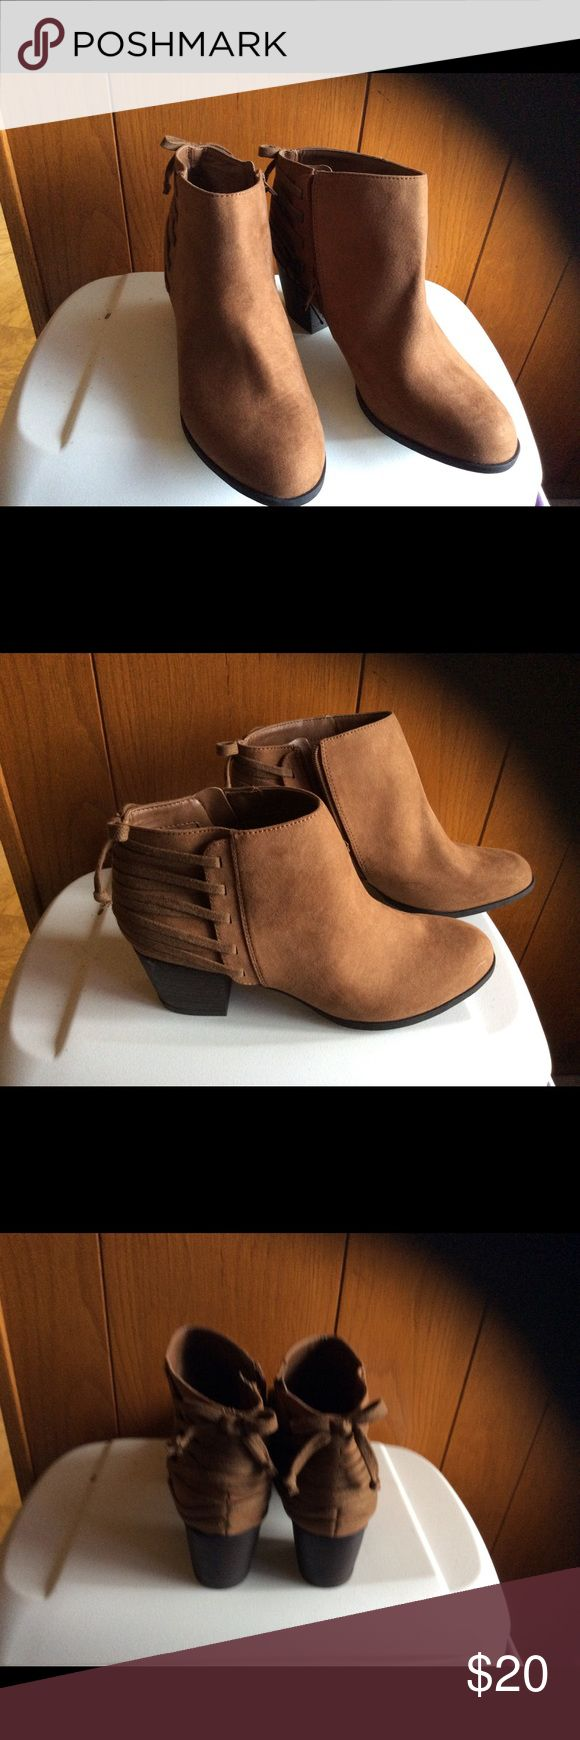 Ladies ankle boots Tan ankle boots zip inside, have nice laces in back for design indigo rd Shoes Ankle Boots & Booties